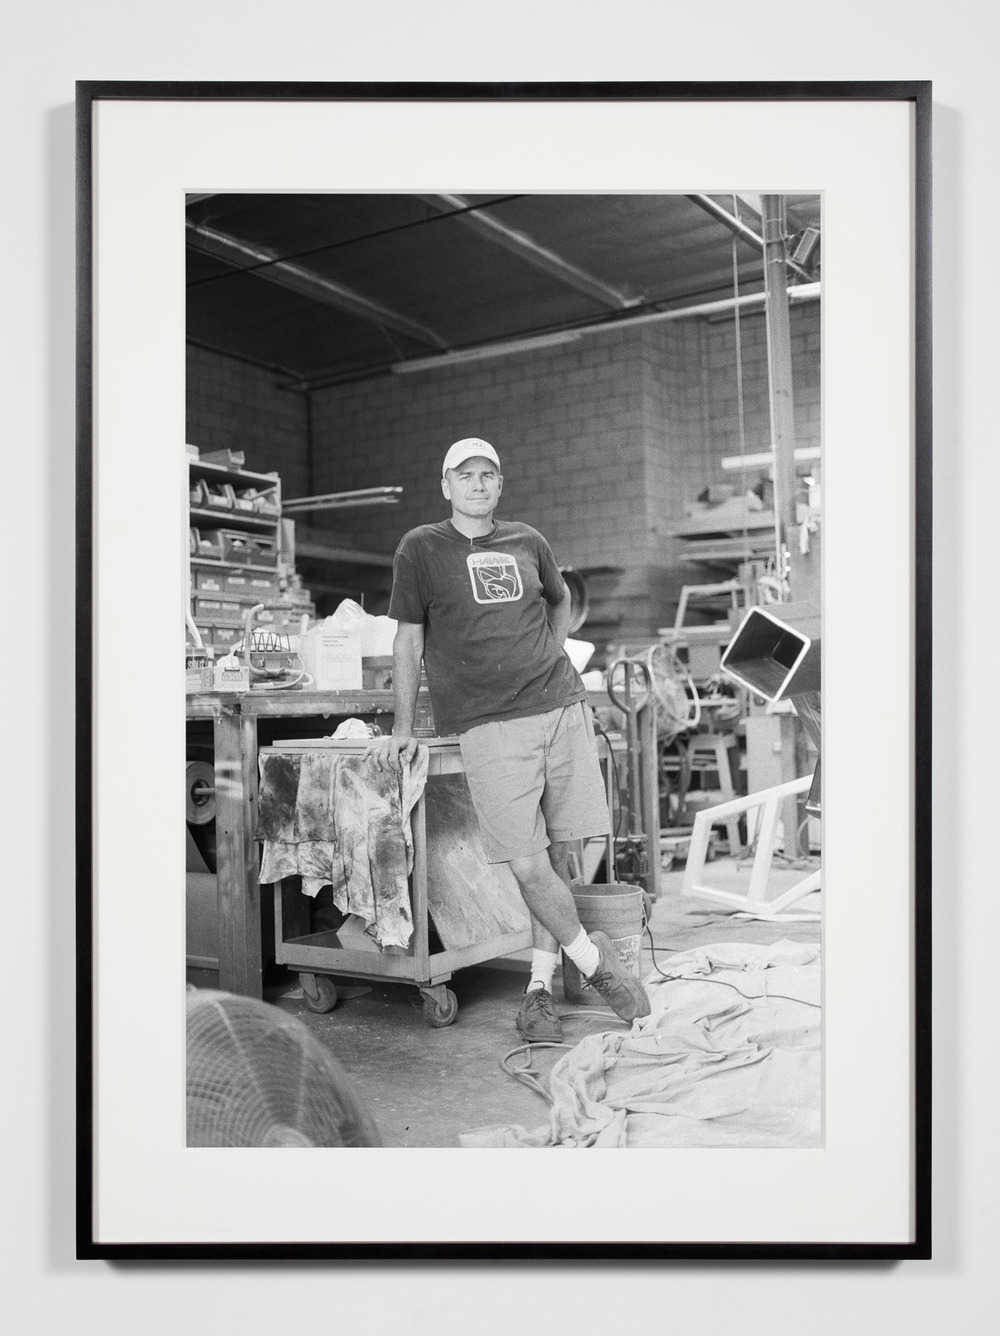 Fabricator (JD), Glendale, California, July 9, 2008    2008   Epson Ultrachrome K3 archival ink jet print on Hahnemühle Photo Rag paper  36 3/8 x 26 3/8 inches   Industrial Portraits, 2008–